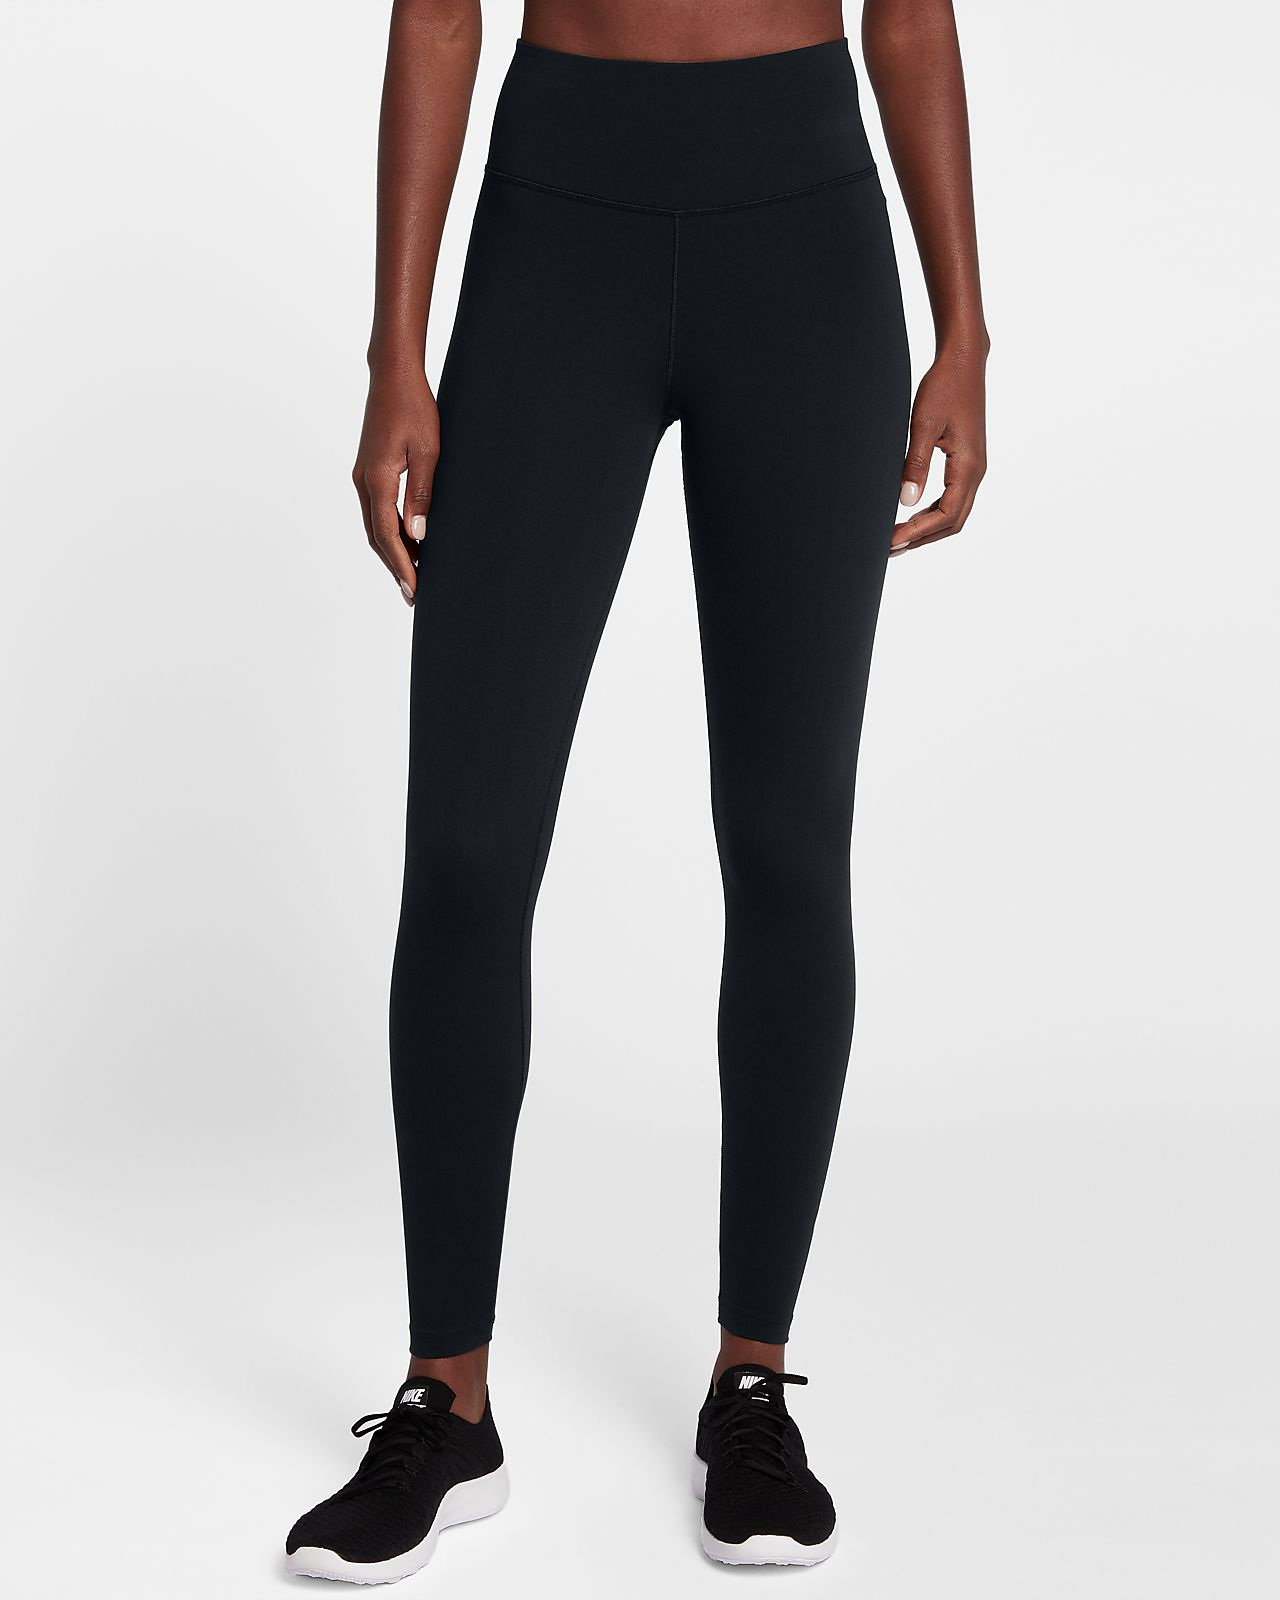 new style 89249 1c54c Nike Sculpt Lux Women s High-Waist Training Tights. Nike.com IE